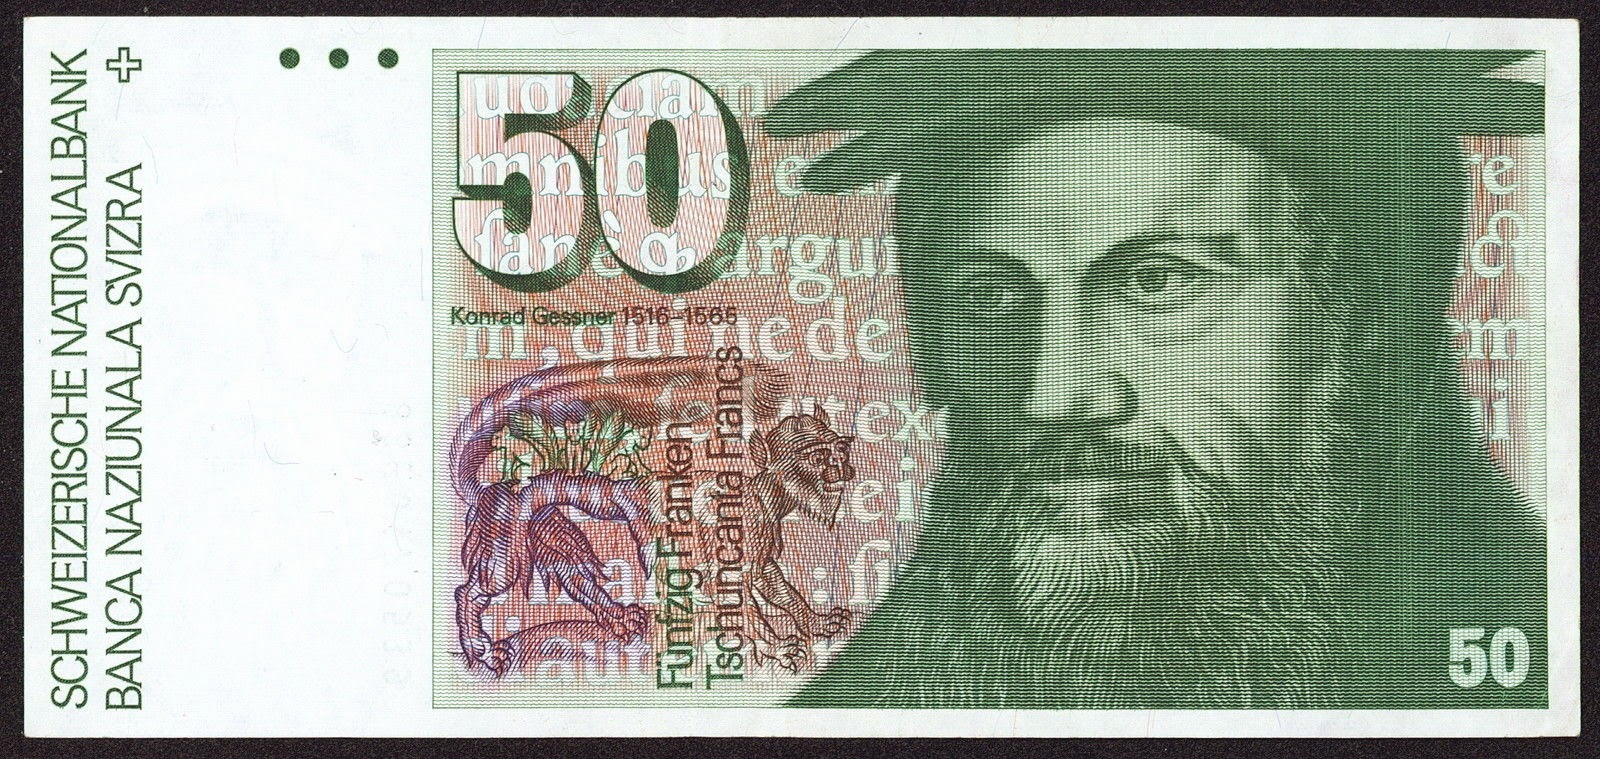 Banknotes of Switzerland 50 Swiss Franc note, Konrad Gessner